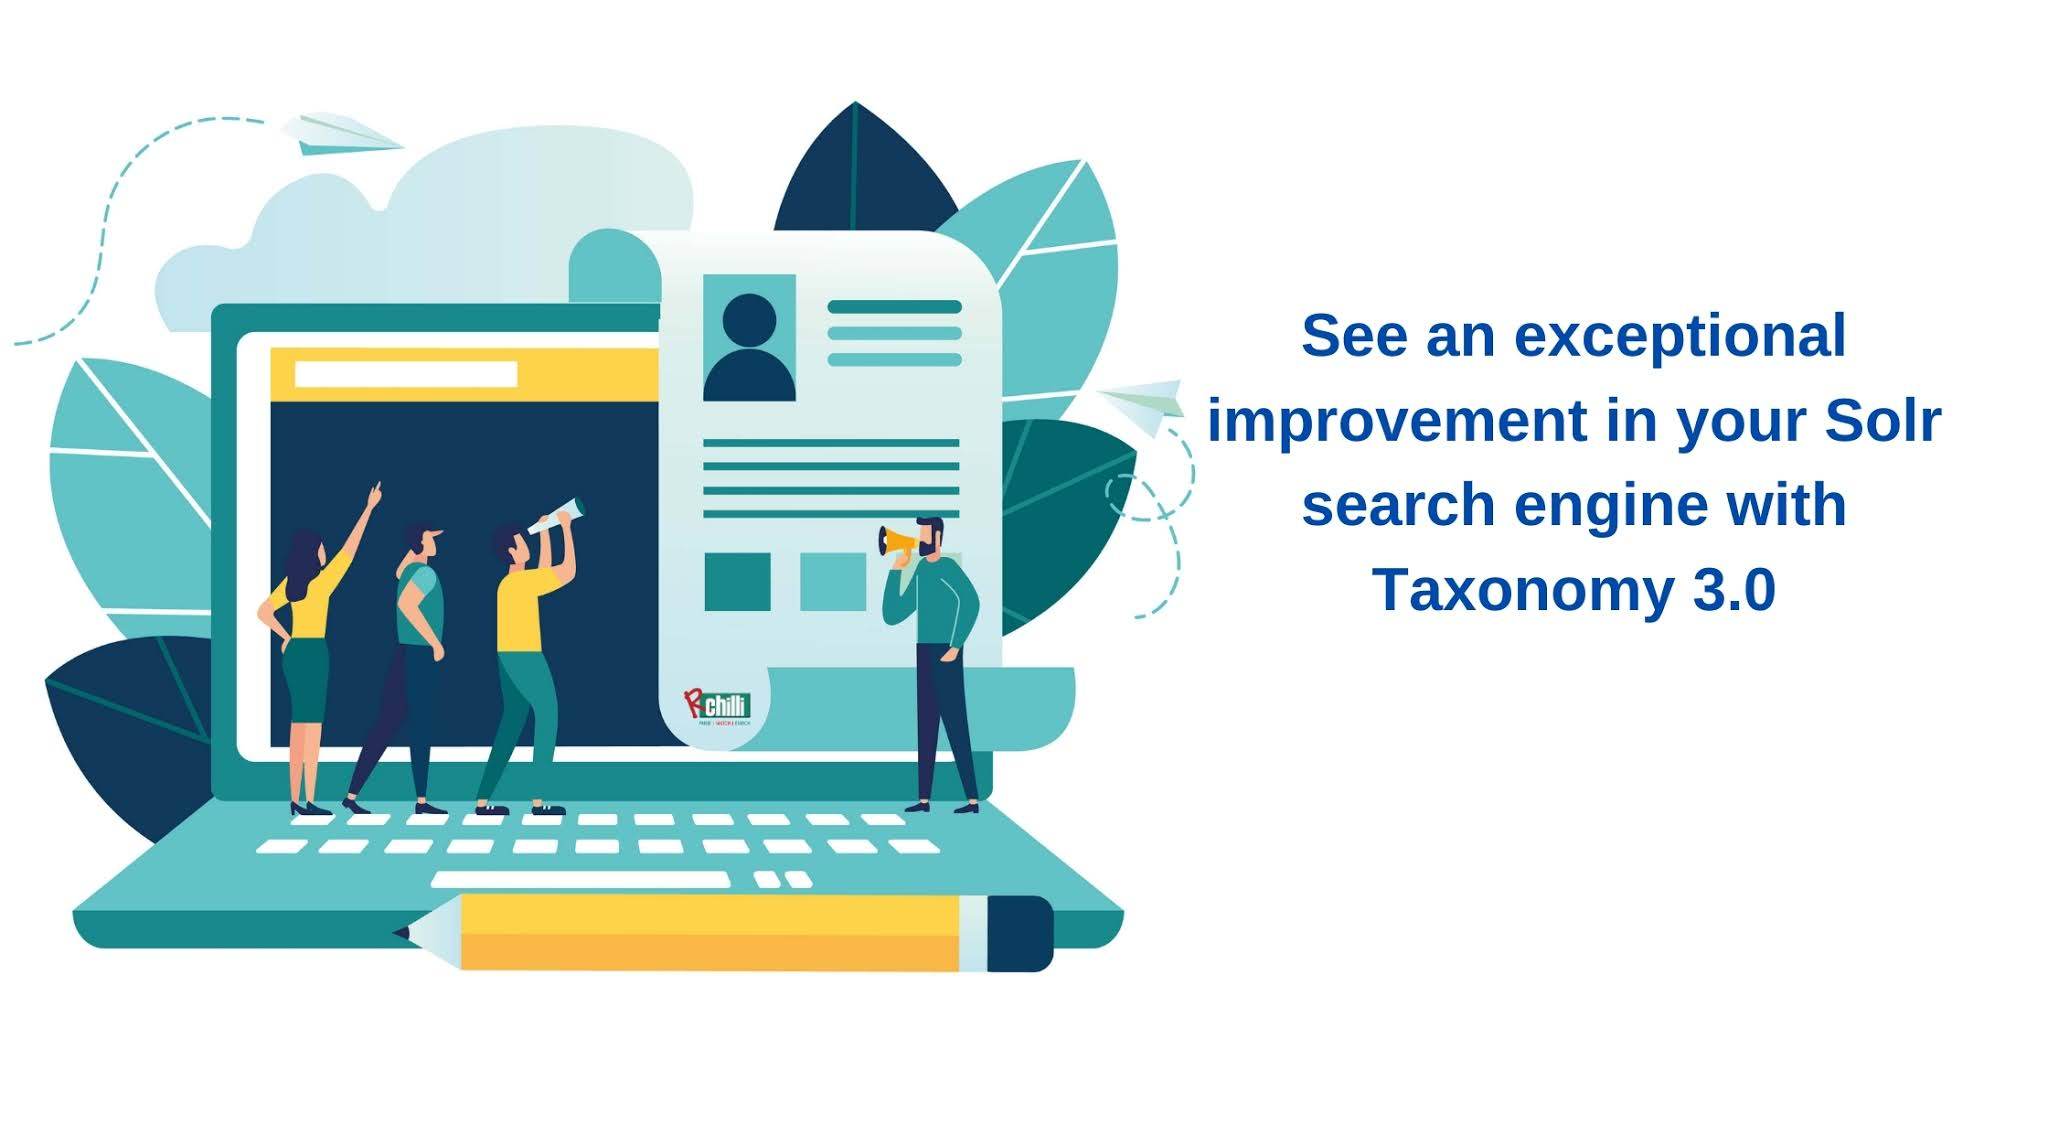 Enrich Your Solr Search Engine with Taxonomy 3.0 (2)